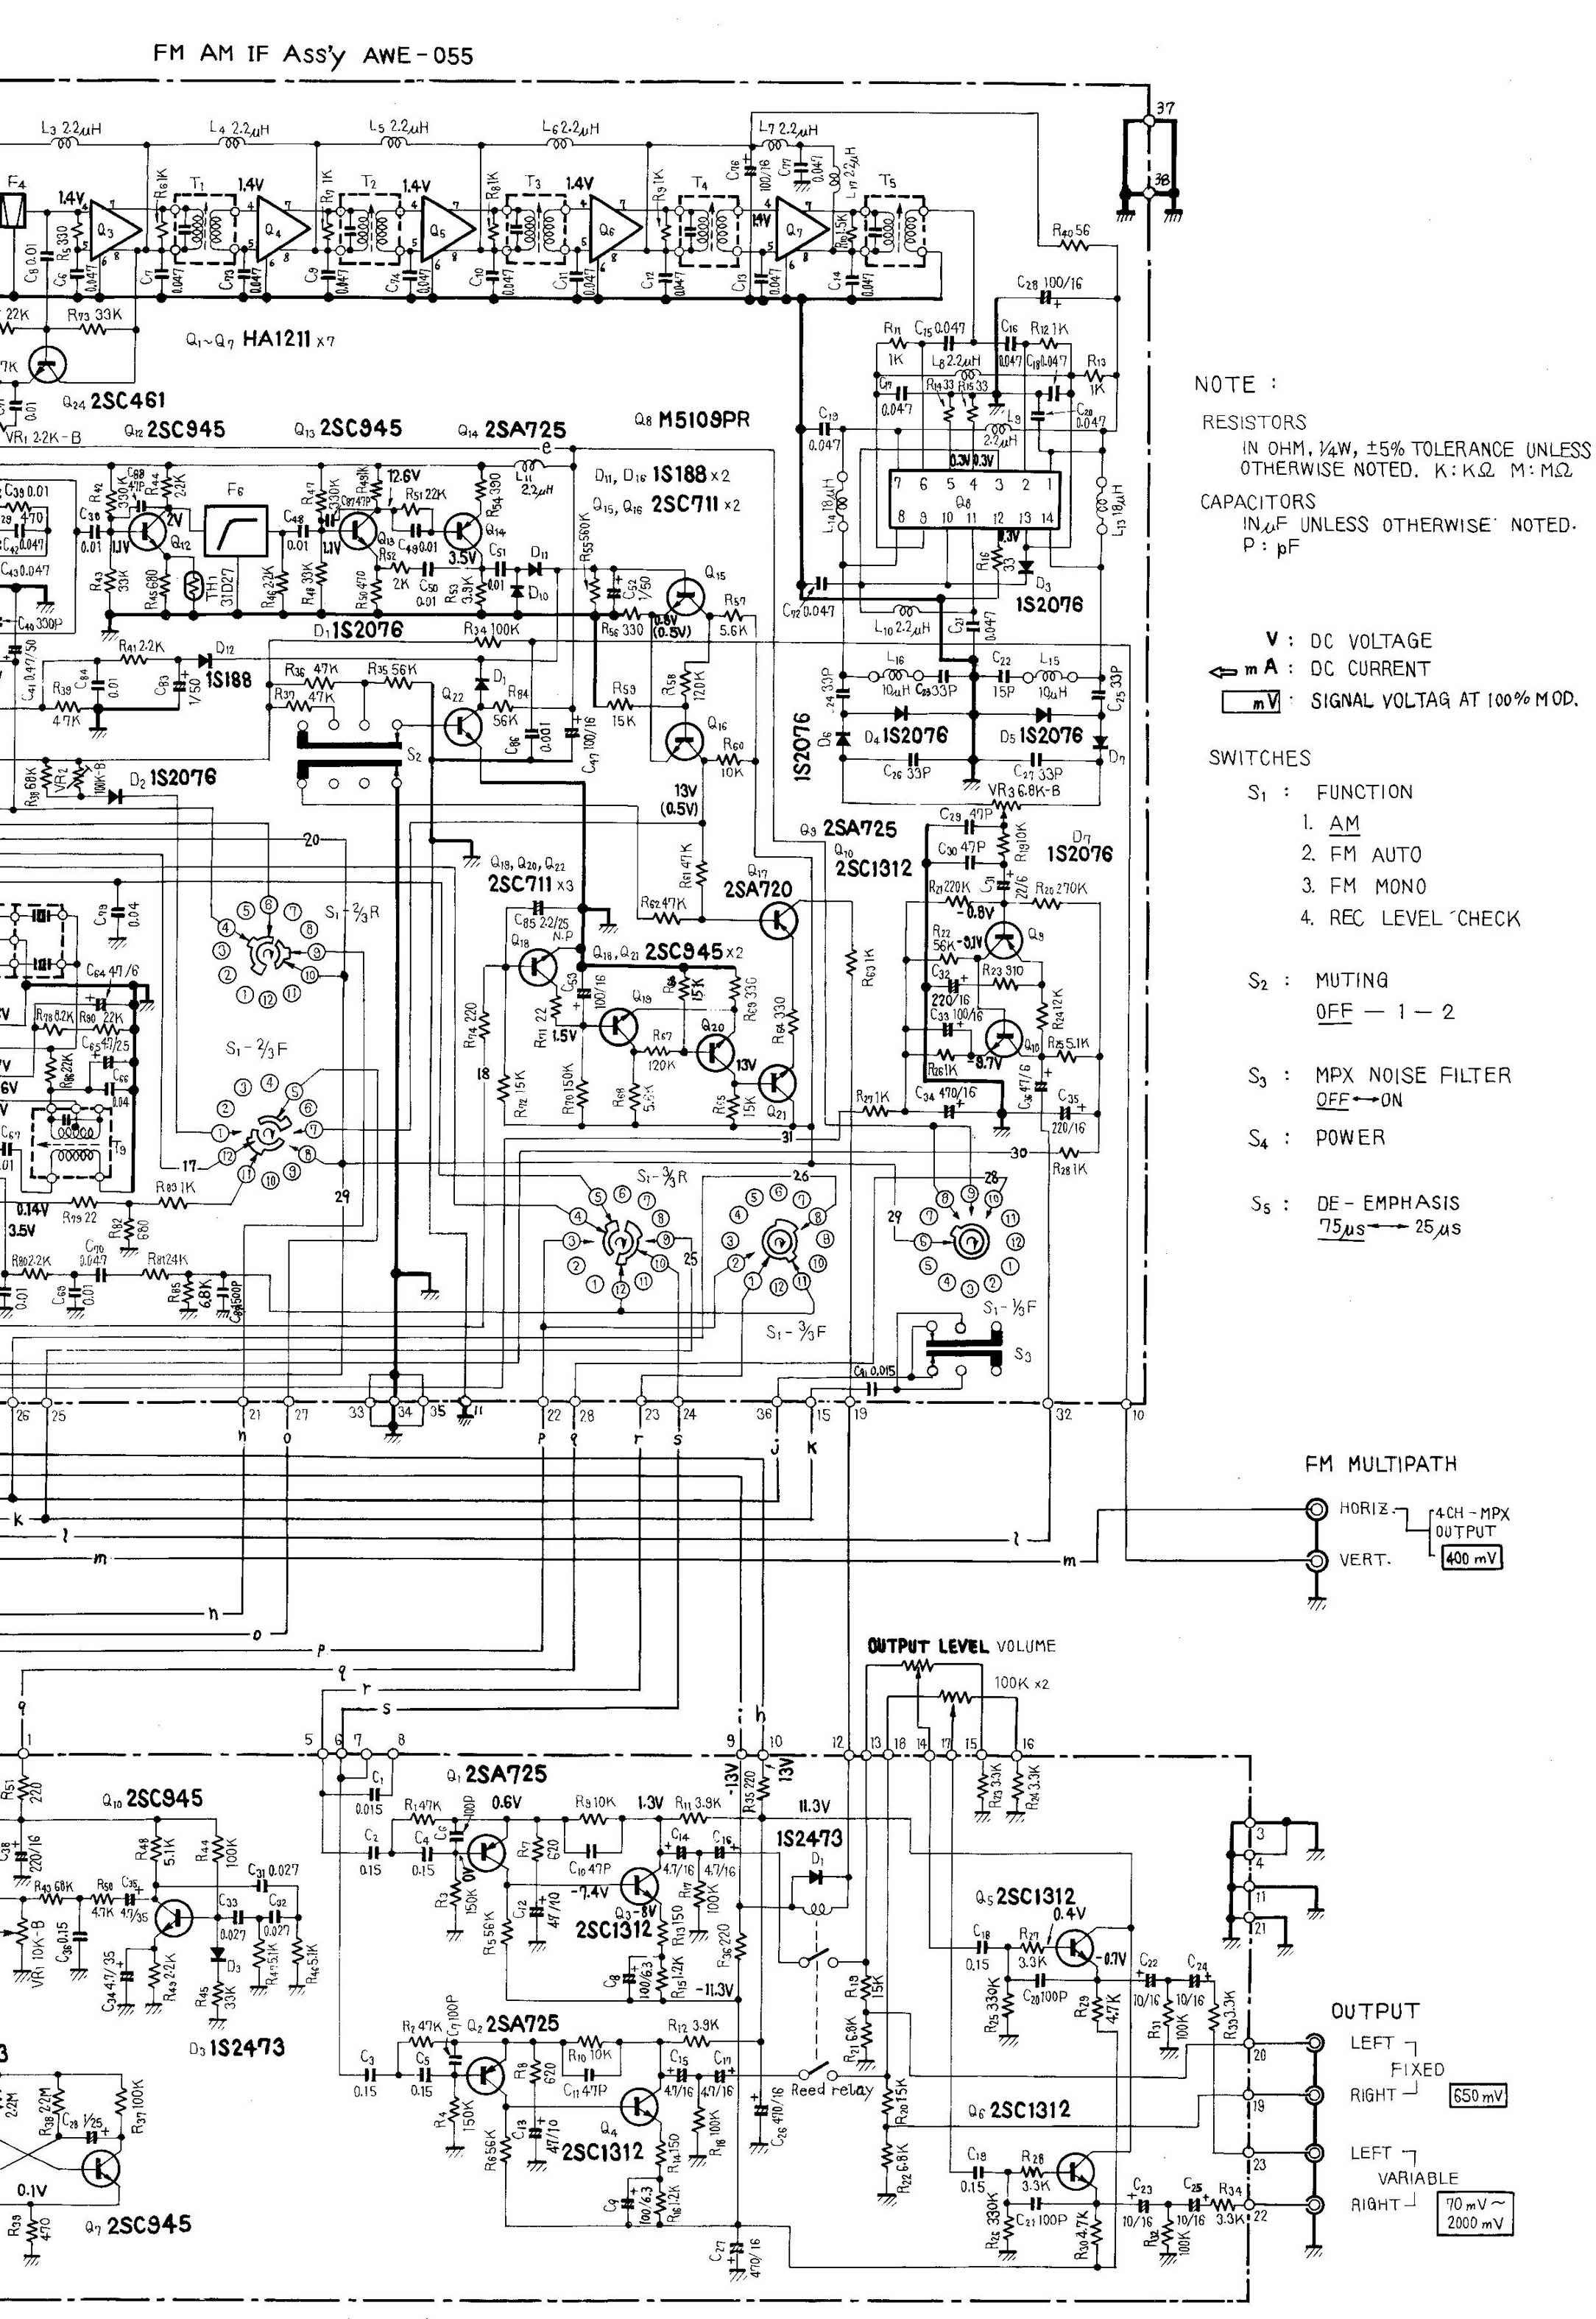 wiring diagram for a technics equalizer  diagrams  auto